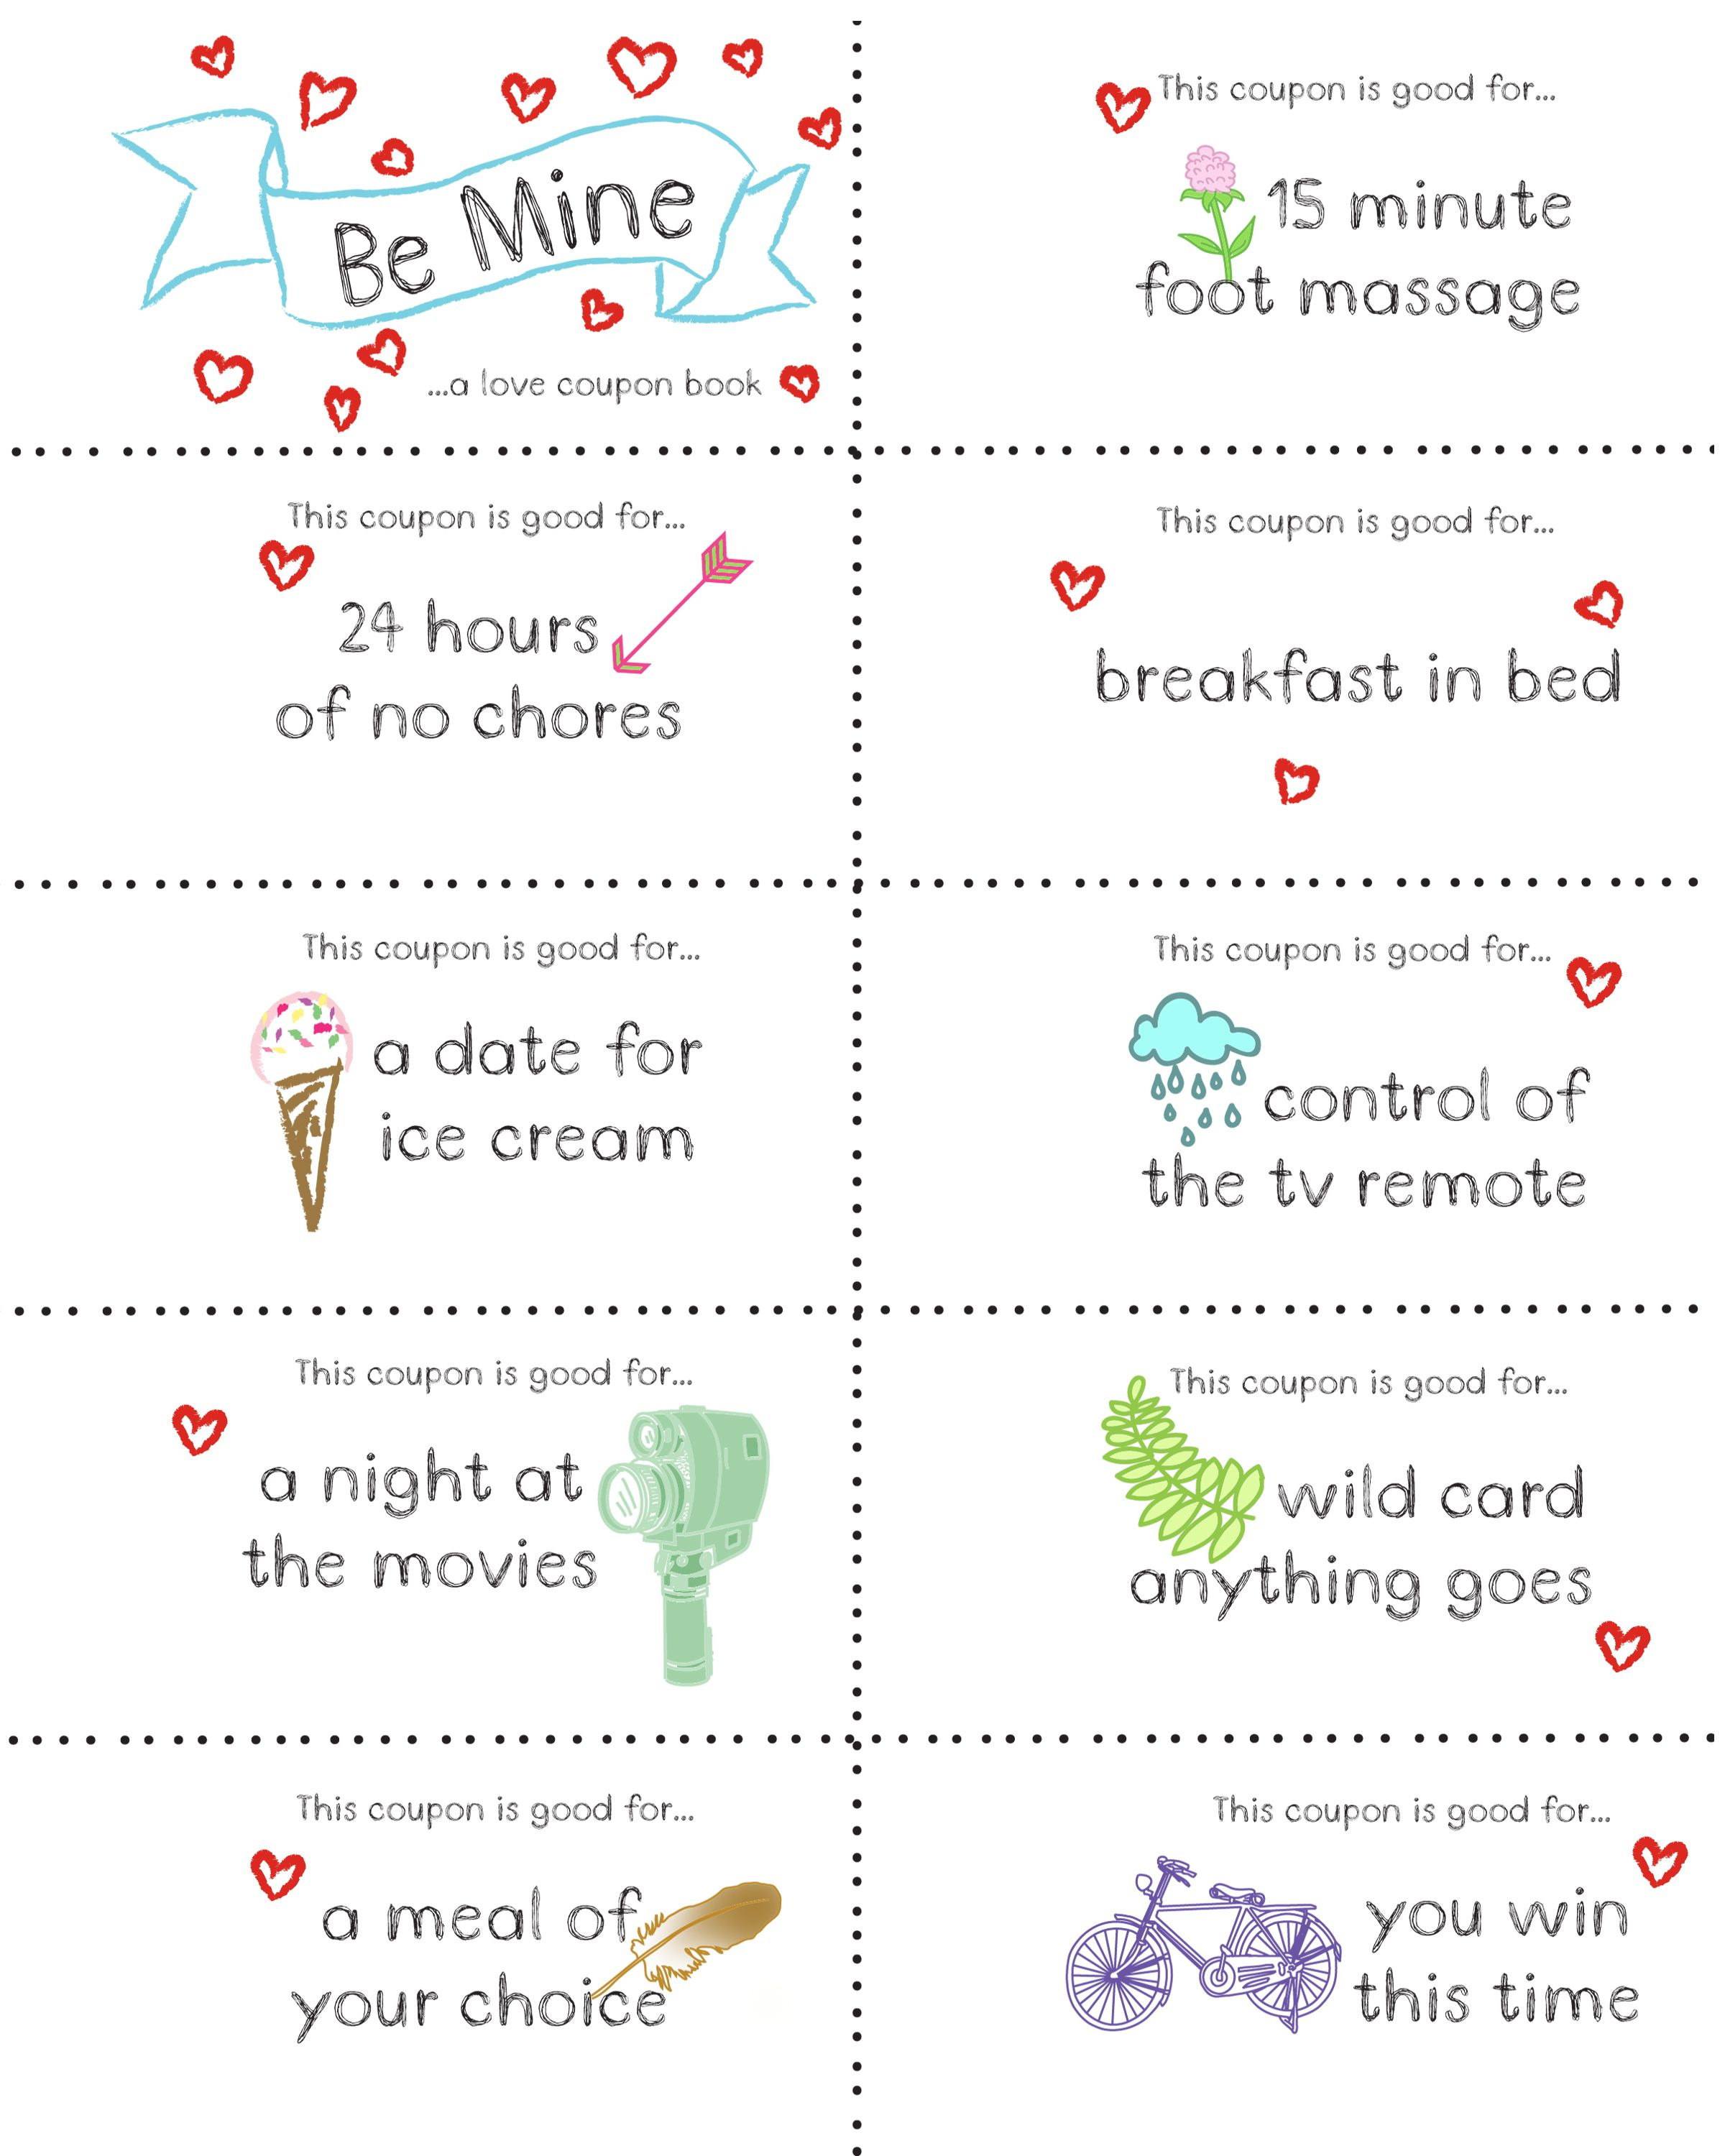 last minute valentine coupon book printable a love last didn t have time to a special something for your valentine print up this last minute valentine by curious nook a love coupon book handmade by you